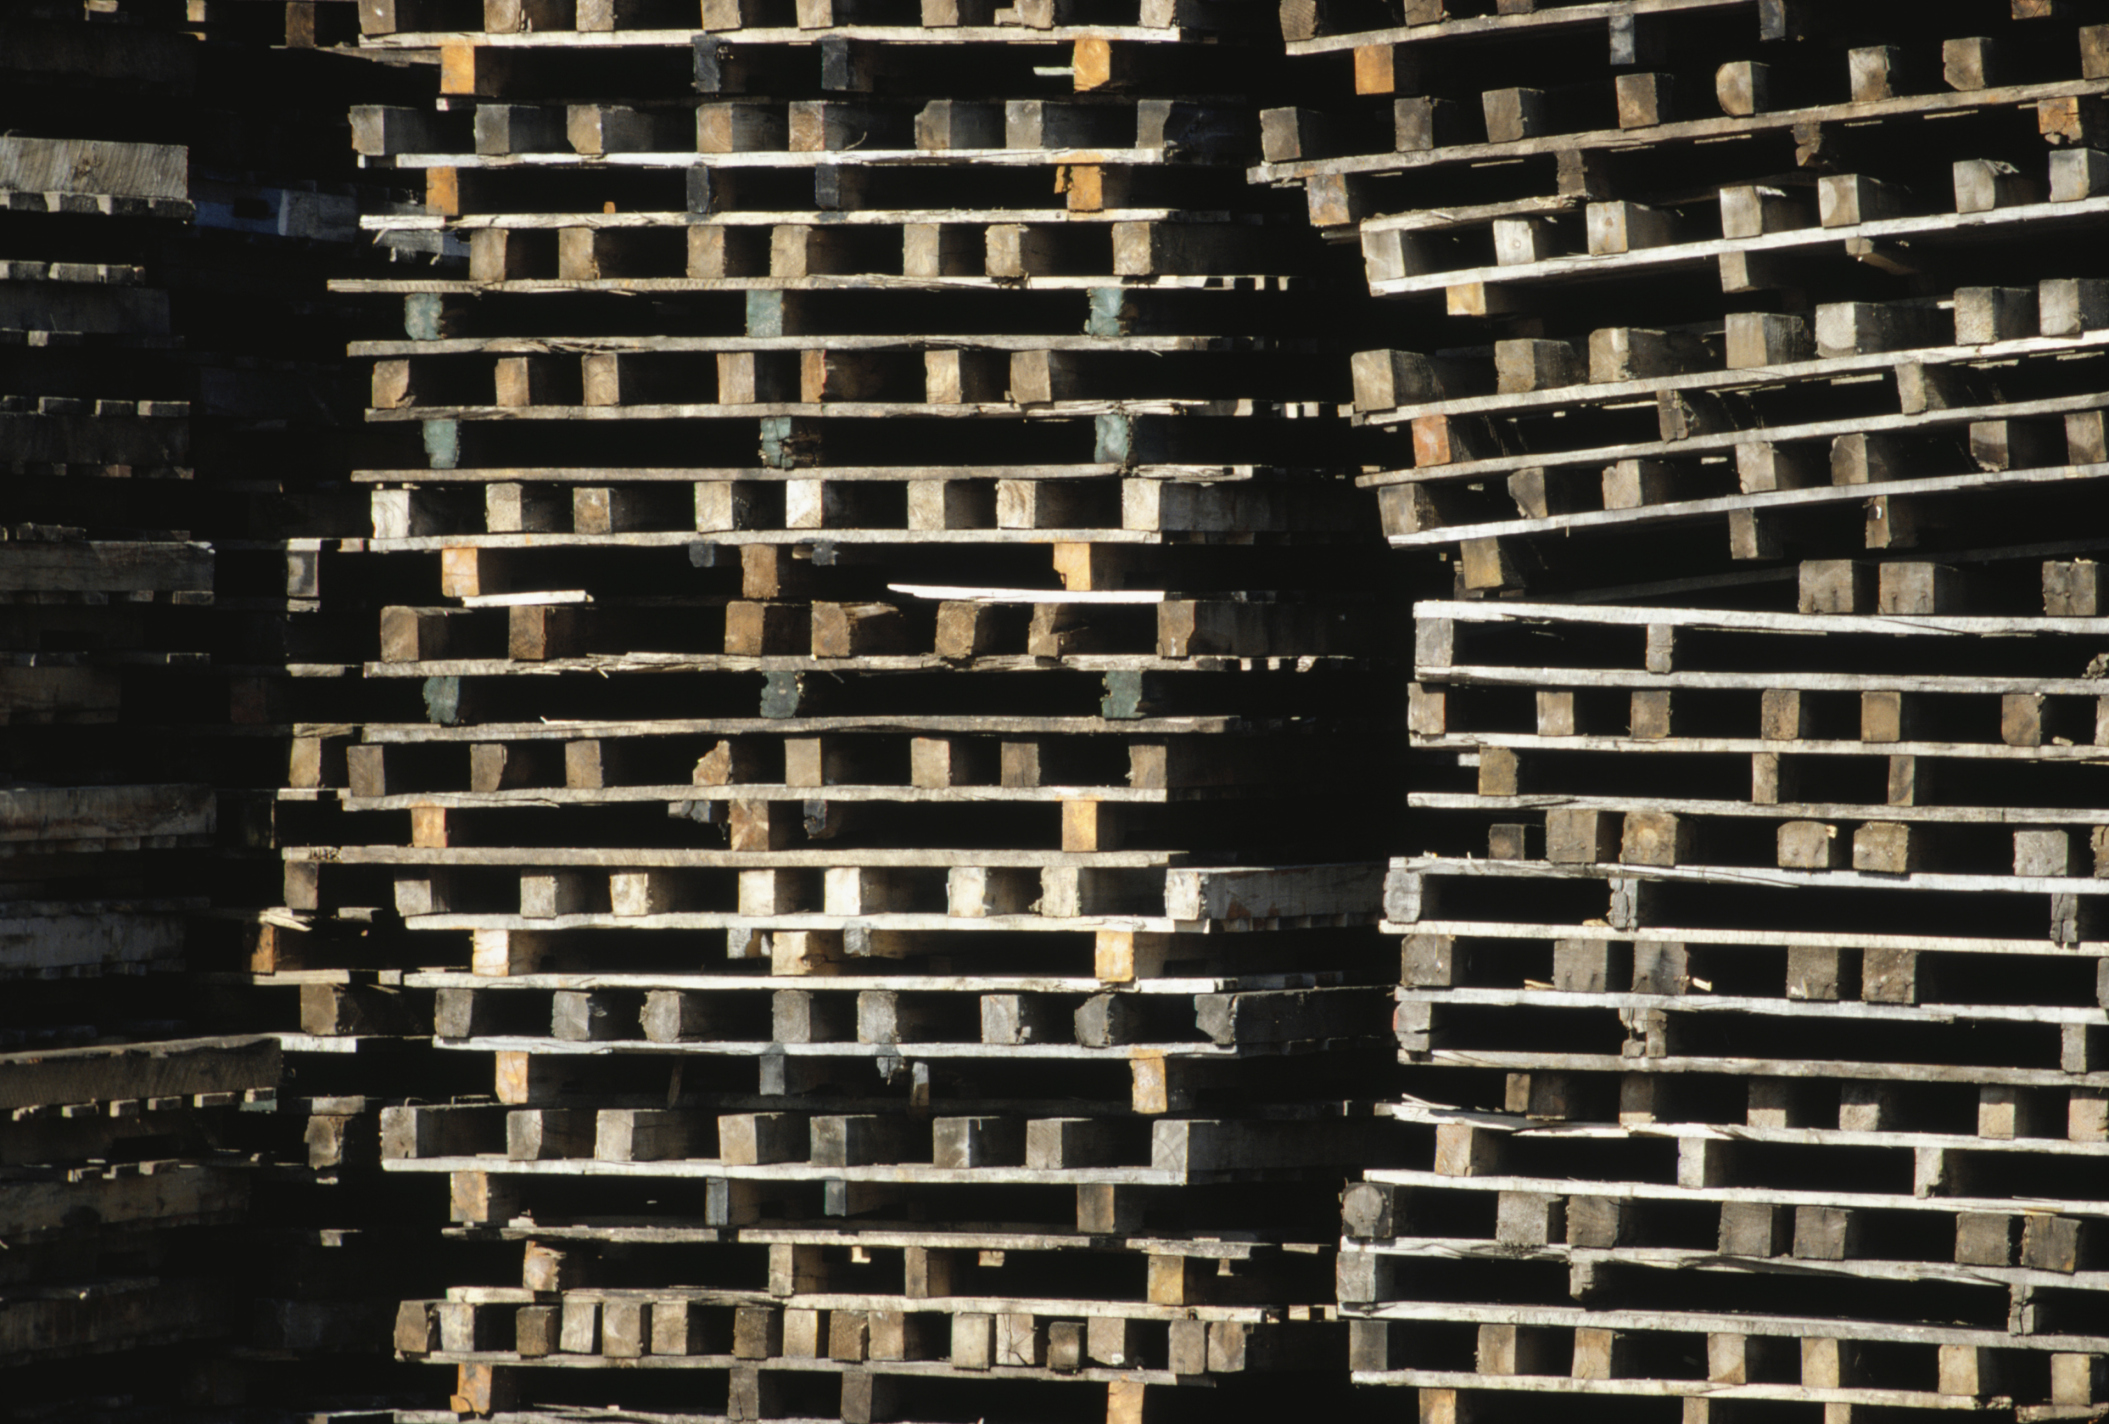 How to Calculate Pallet Size | Bizfluent